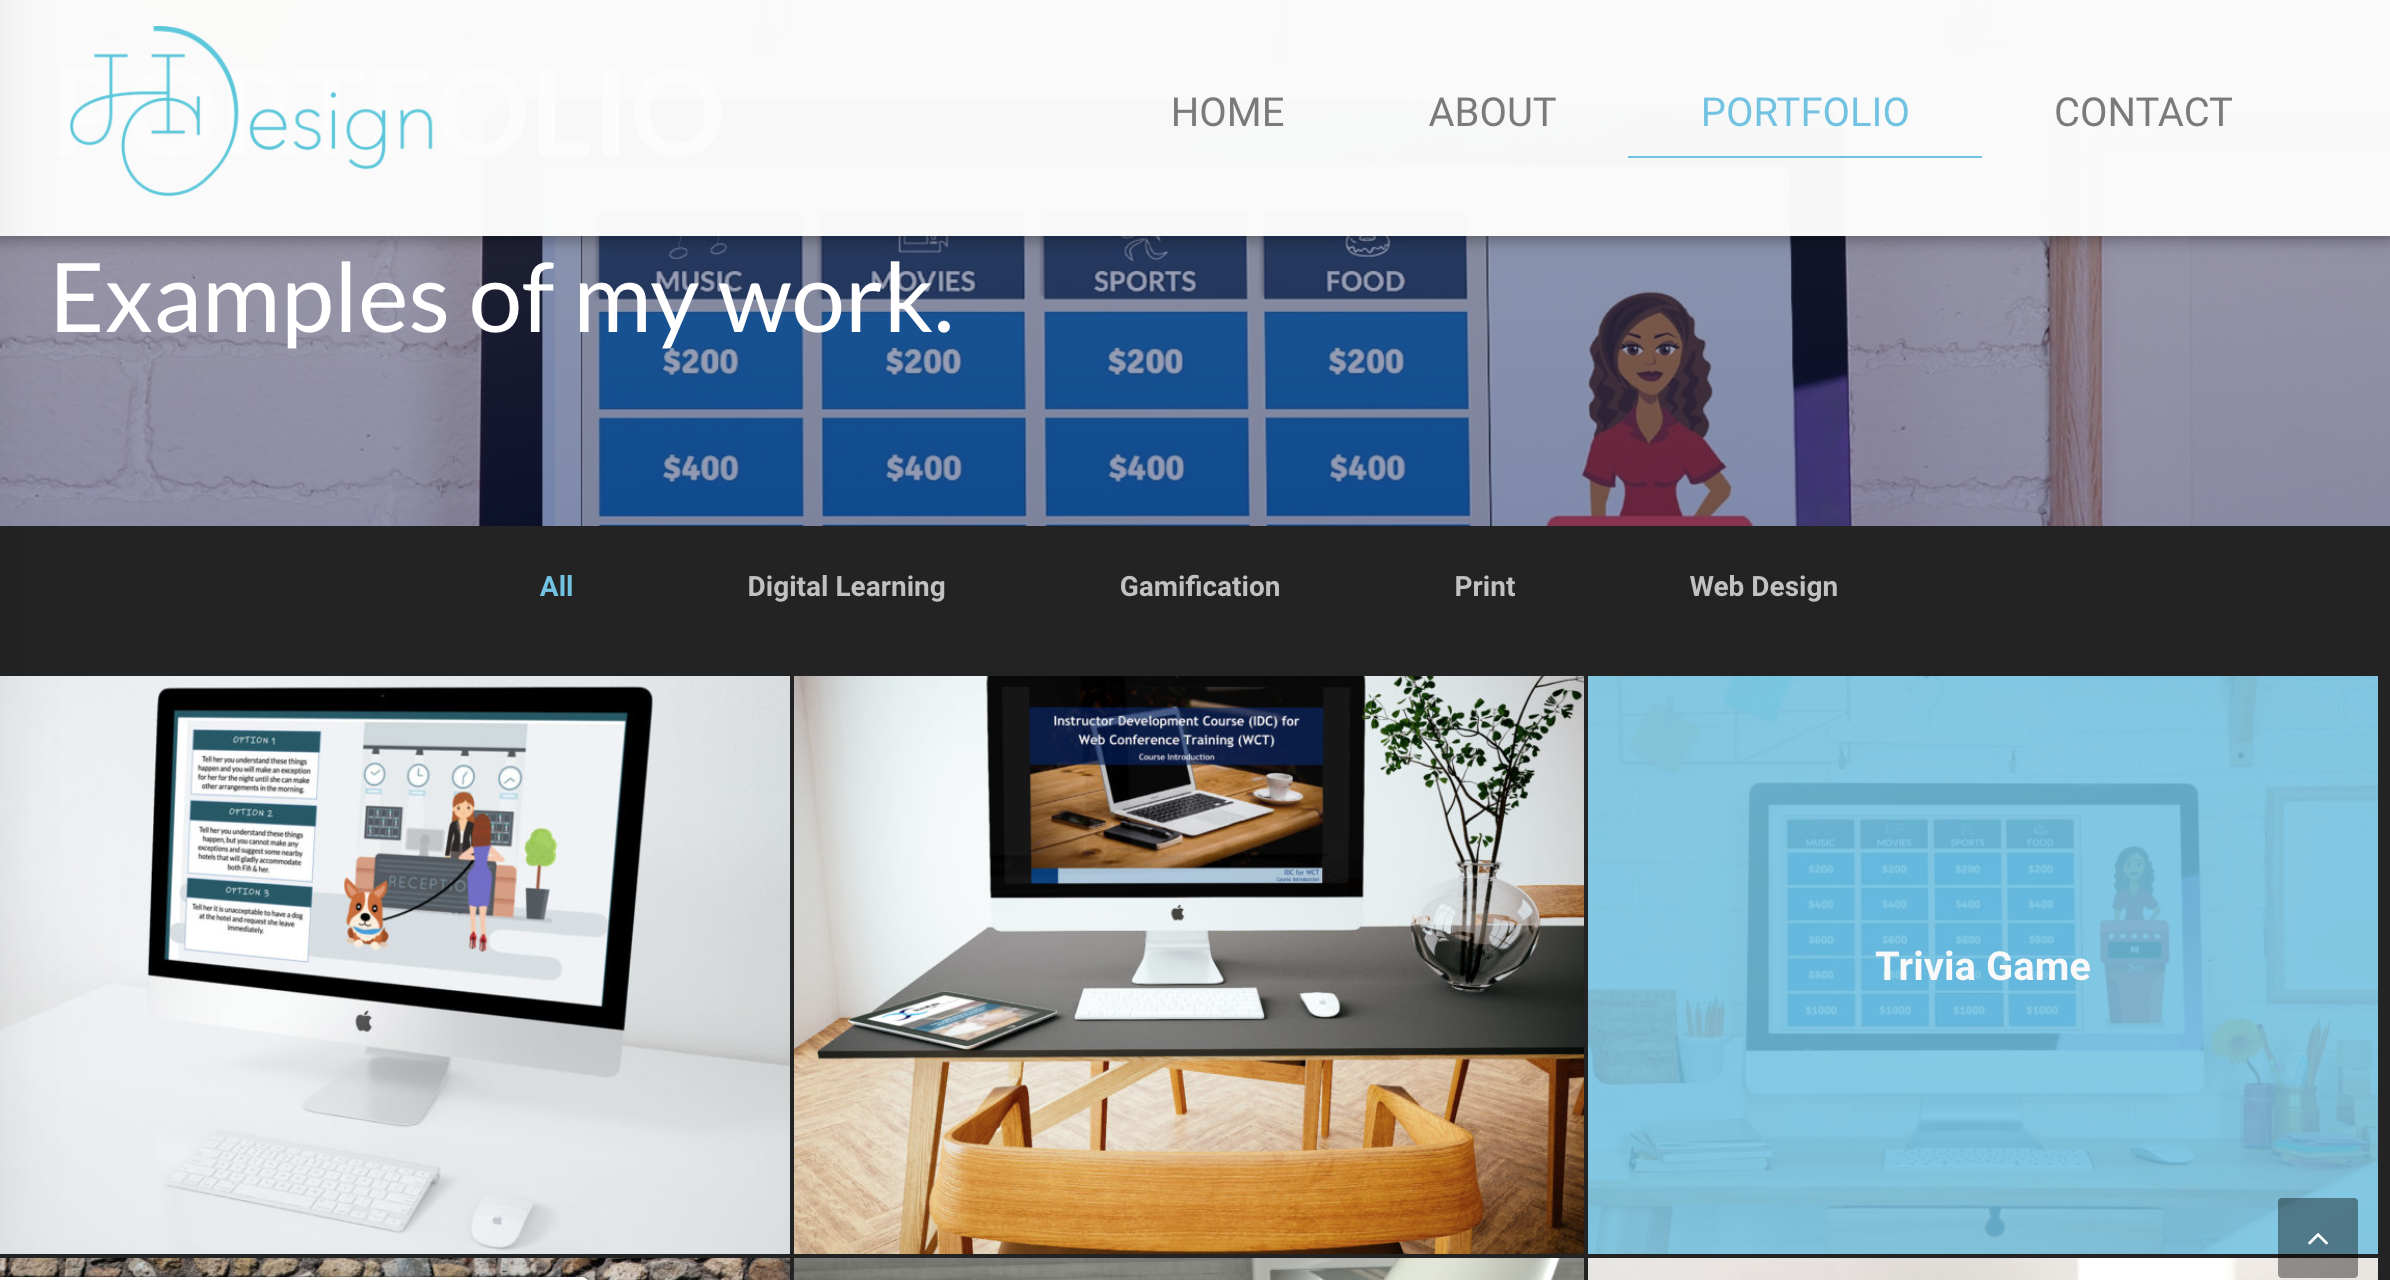 Self-hosted portfolio site by Holly Castellow